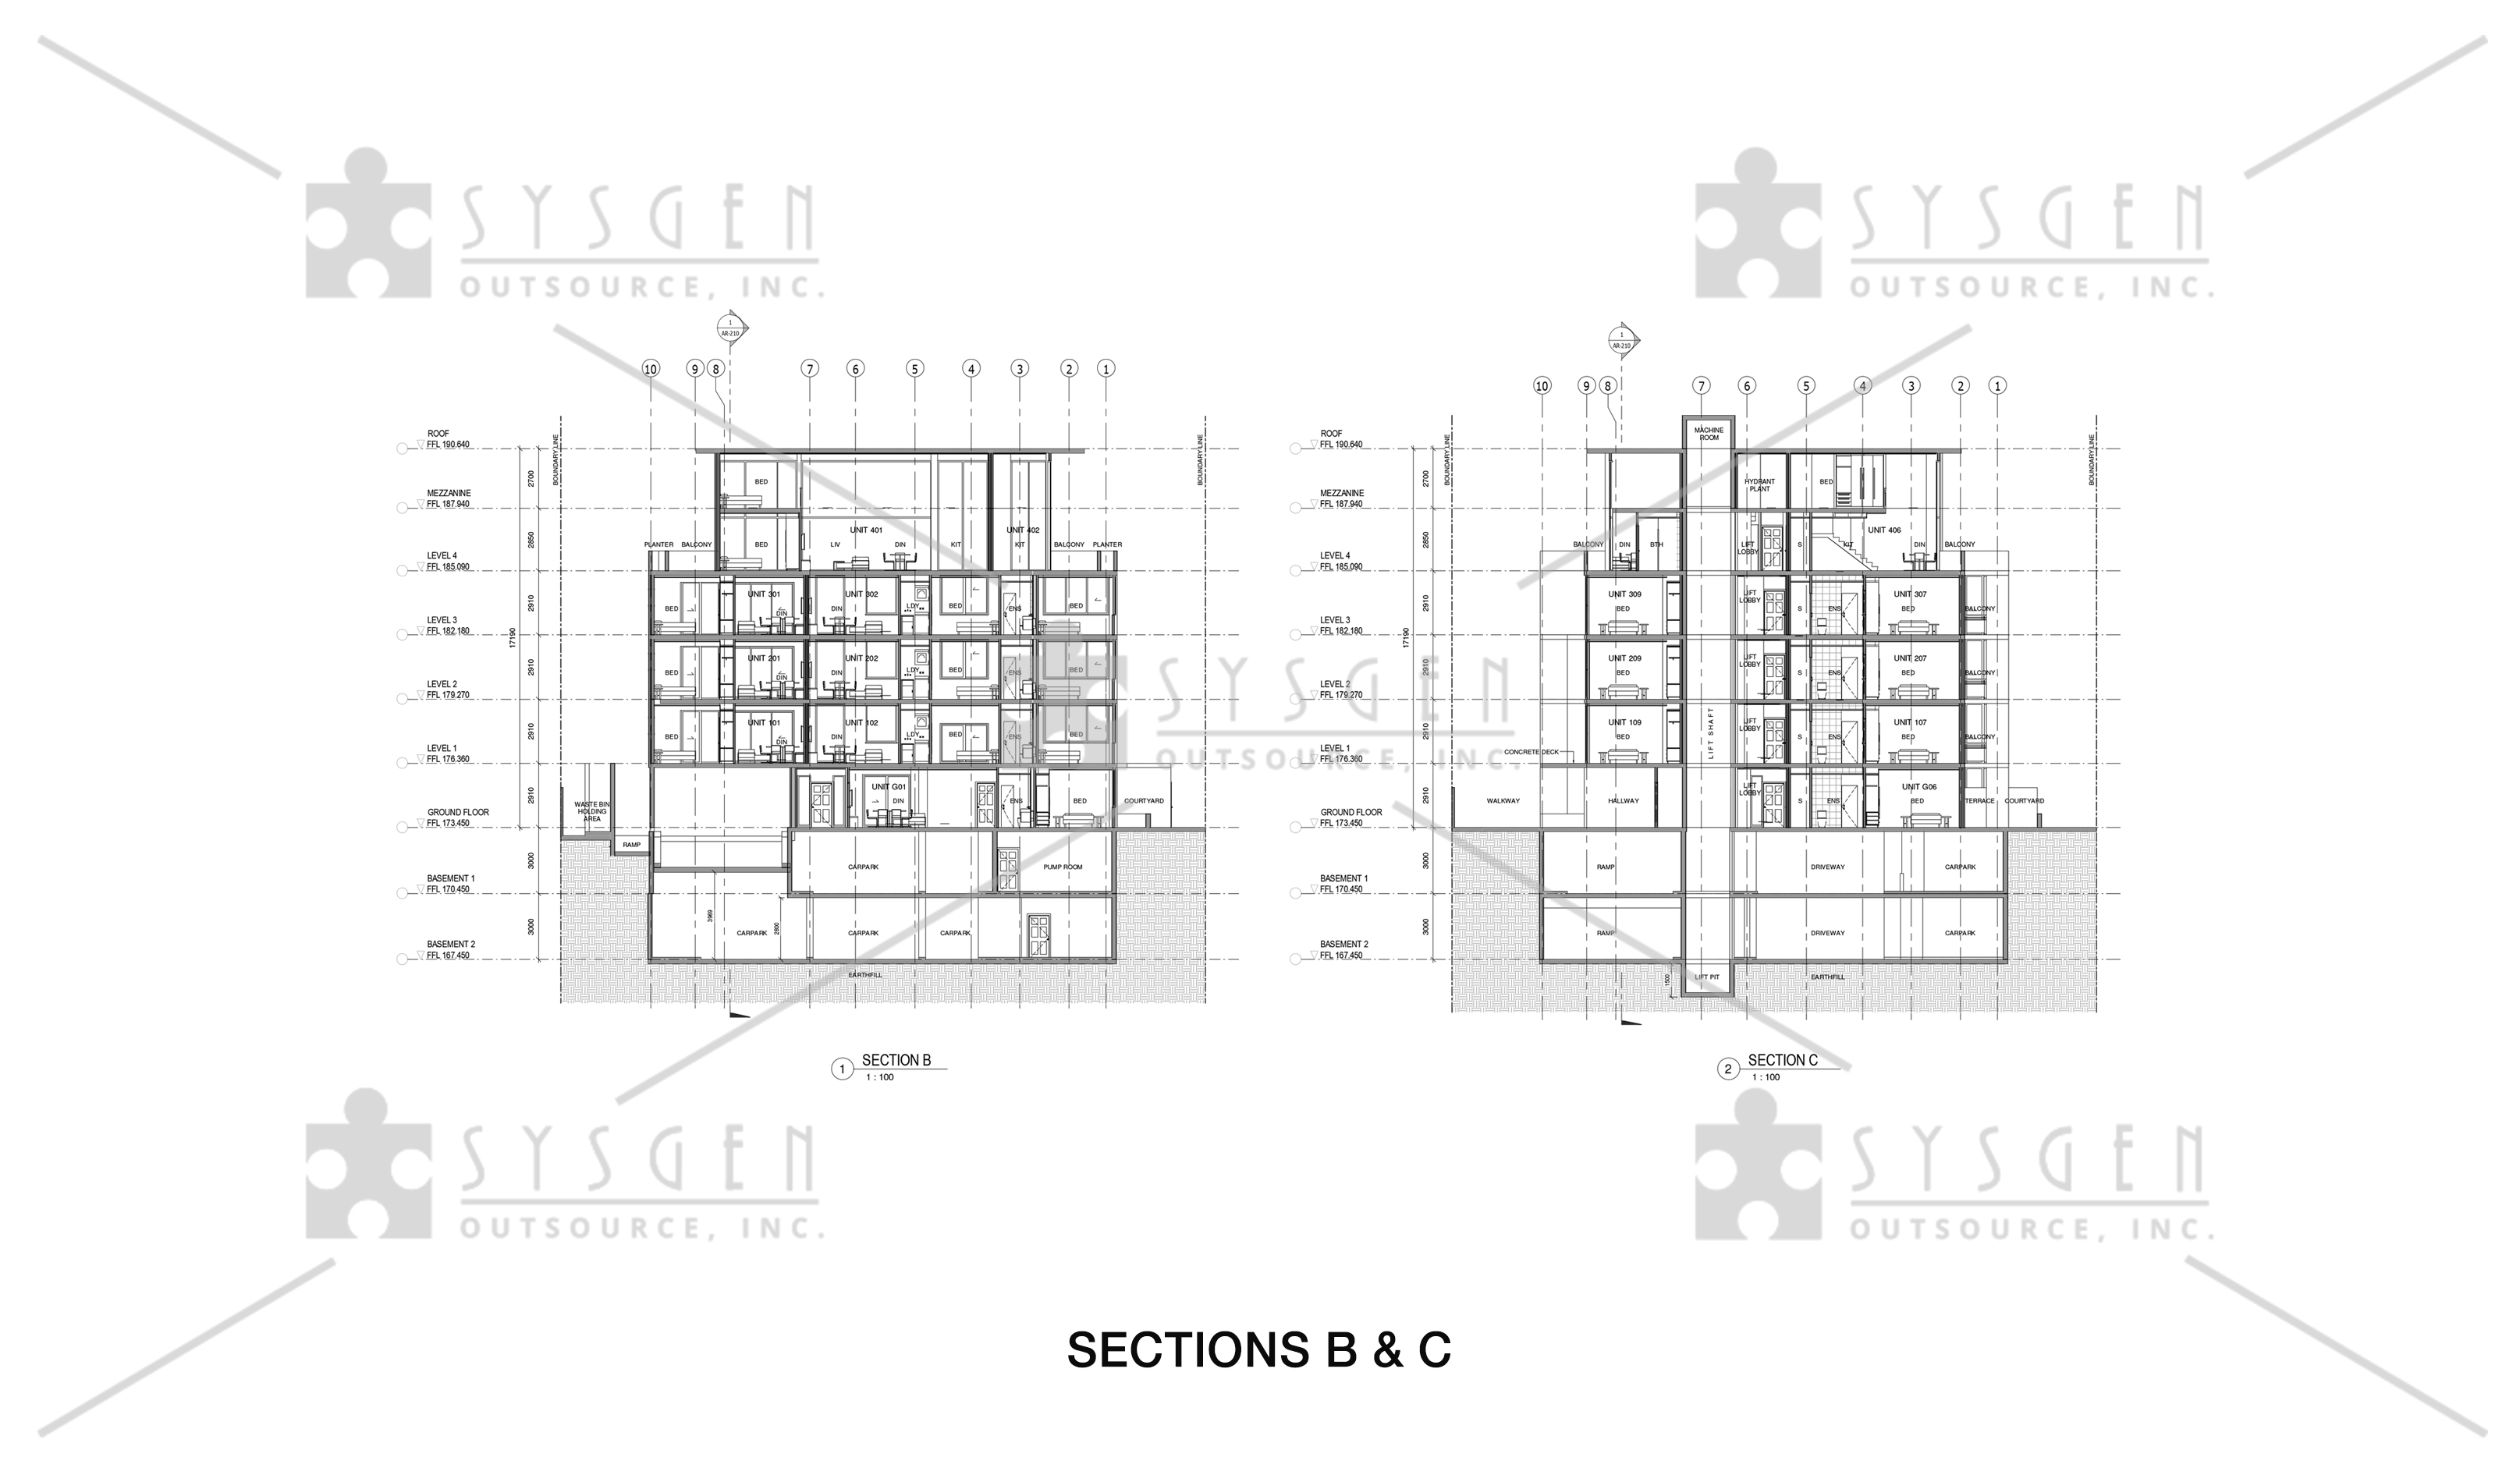 sysgen-outsource-cad-outsourcing-services-cad-conversion-revit-4-storey-residential13